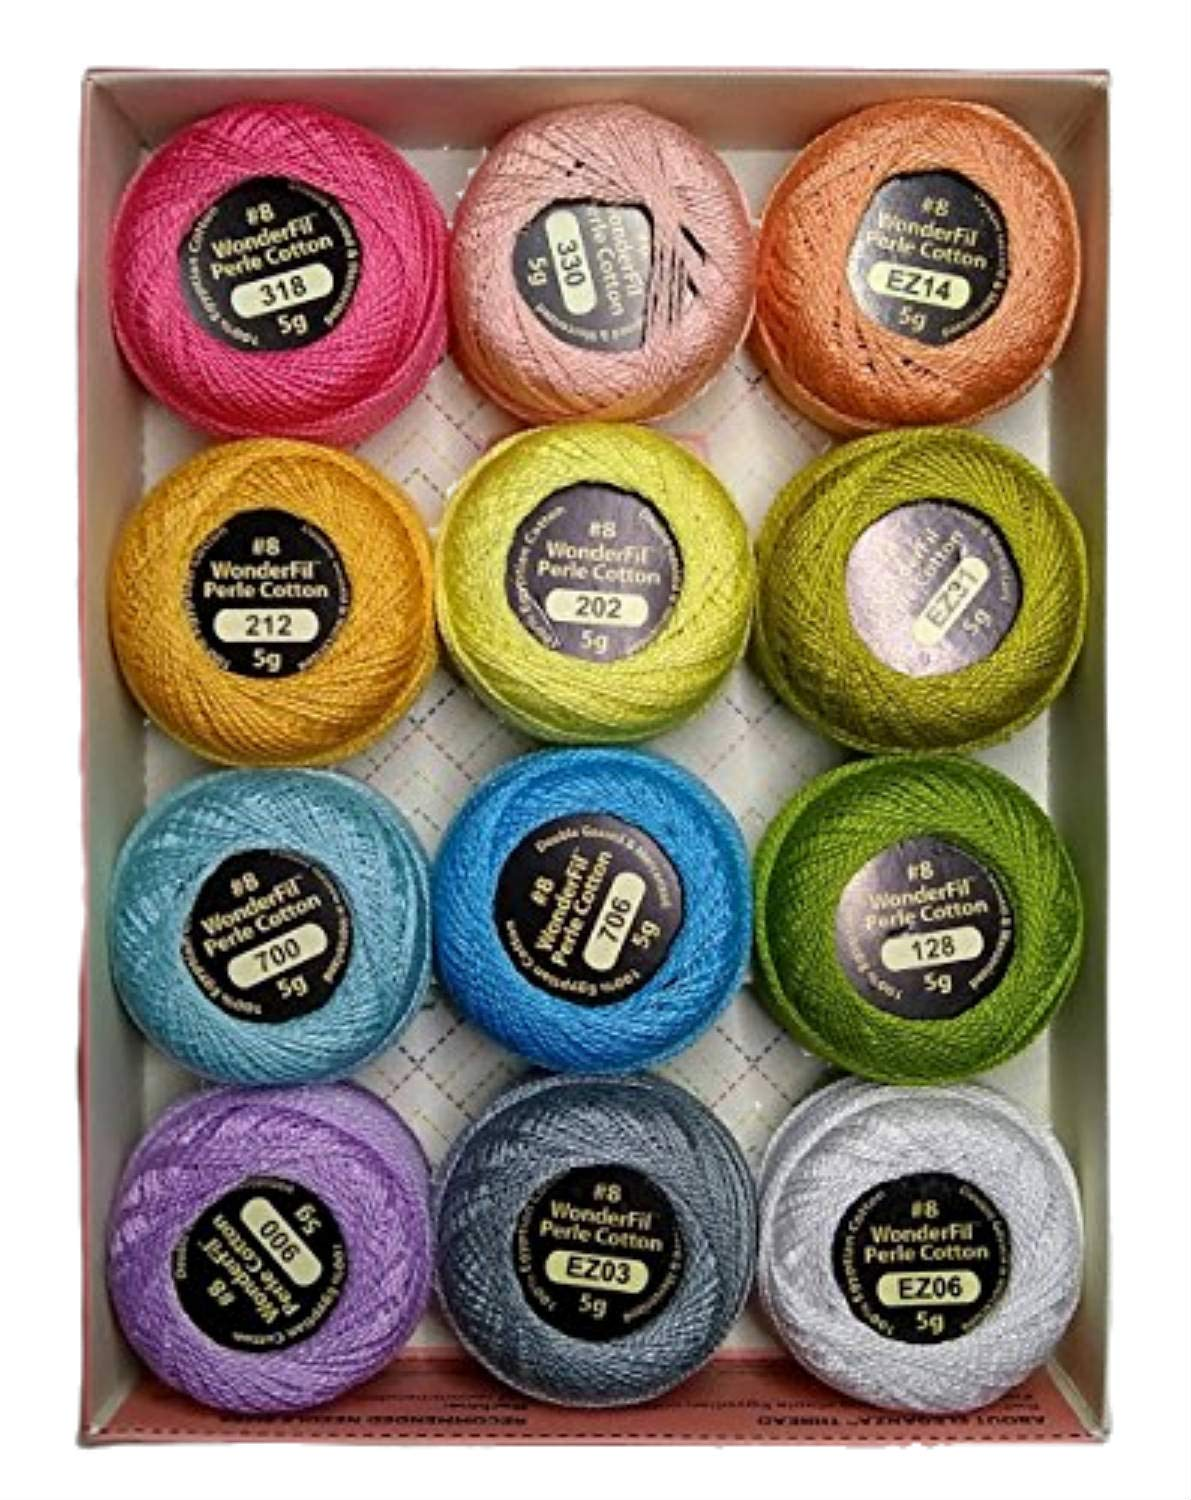 Wonderfil Eleganza #8 Perle Cotton Embroidery Thread Sampler Collection, ''Pastels'' by Eleganza